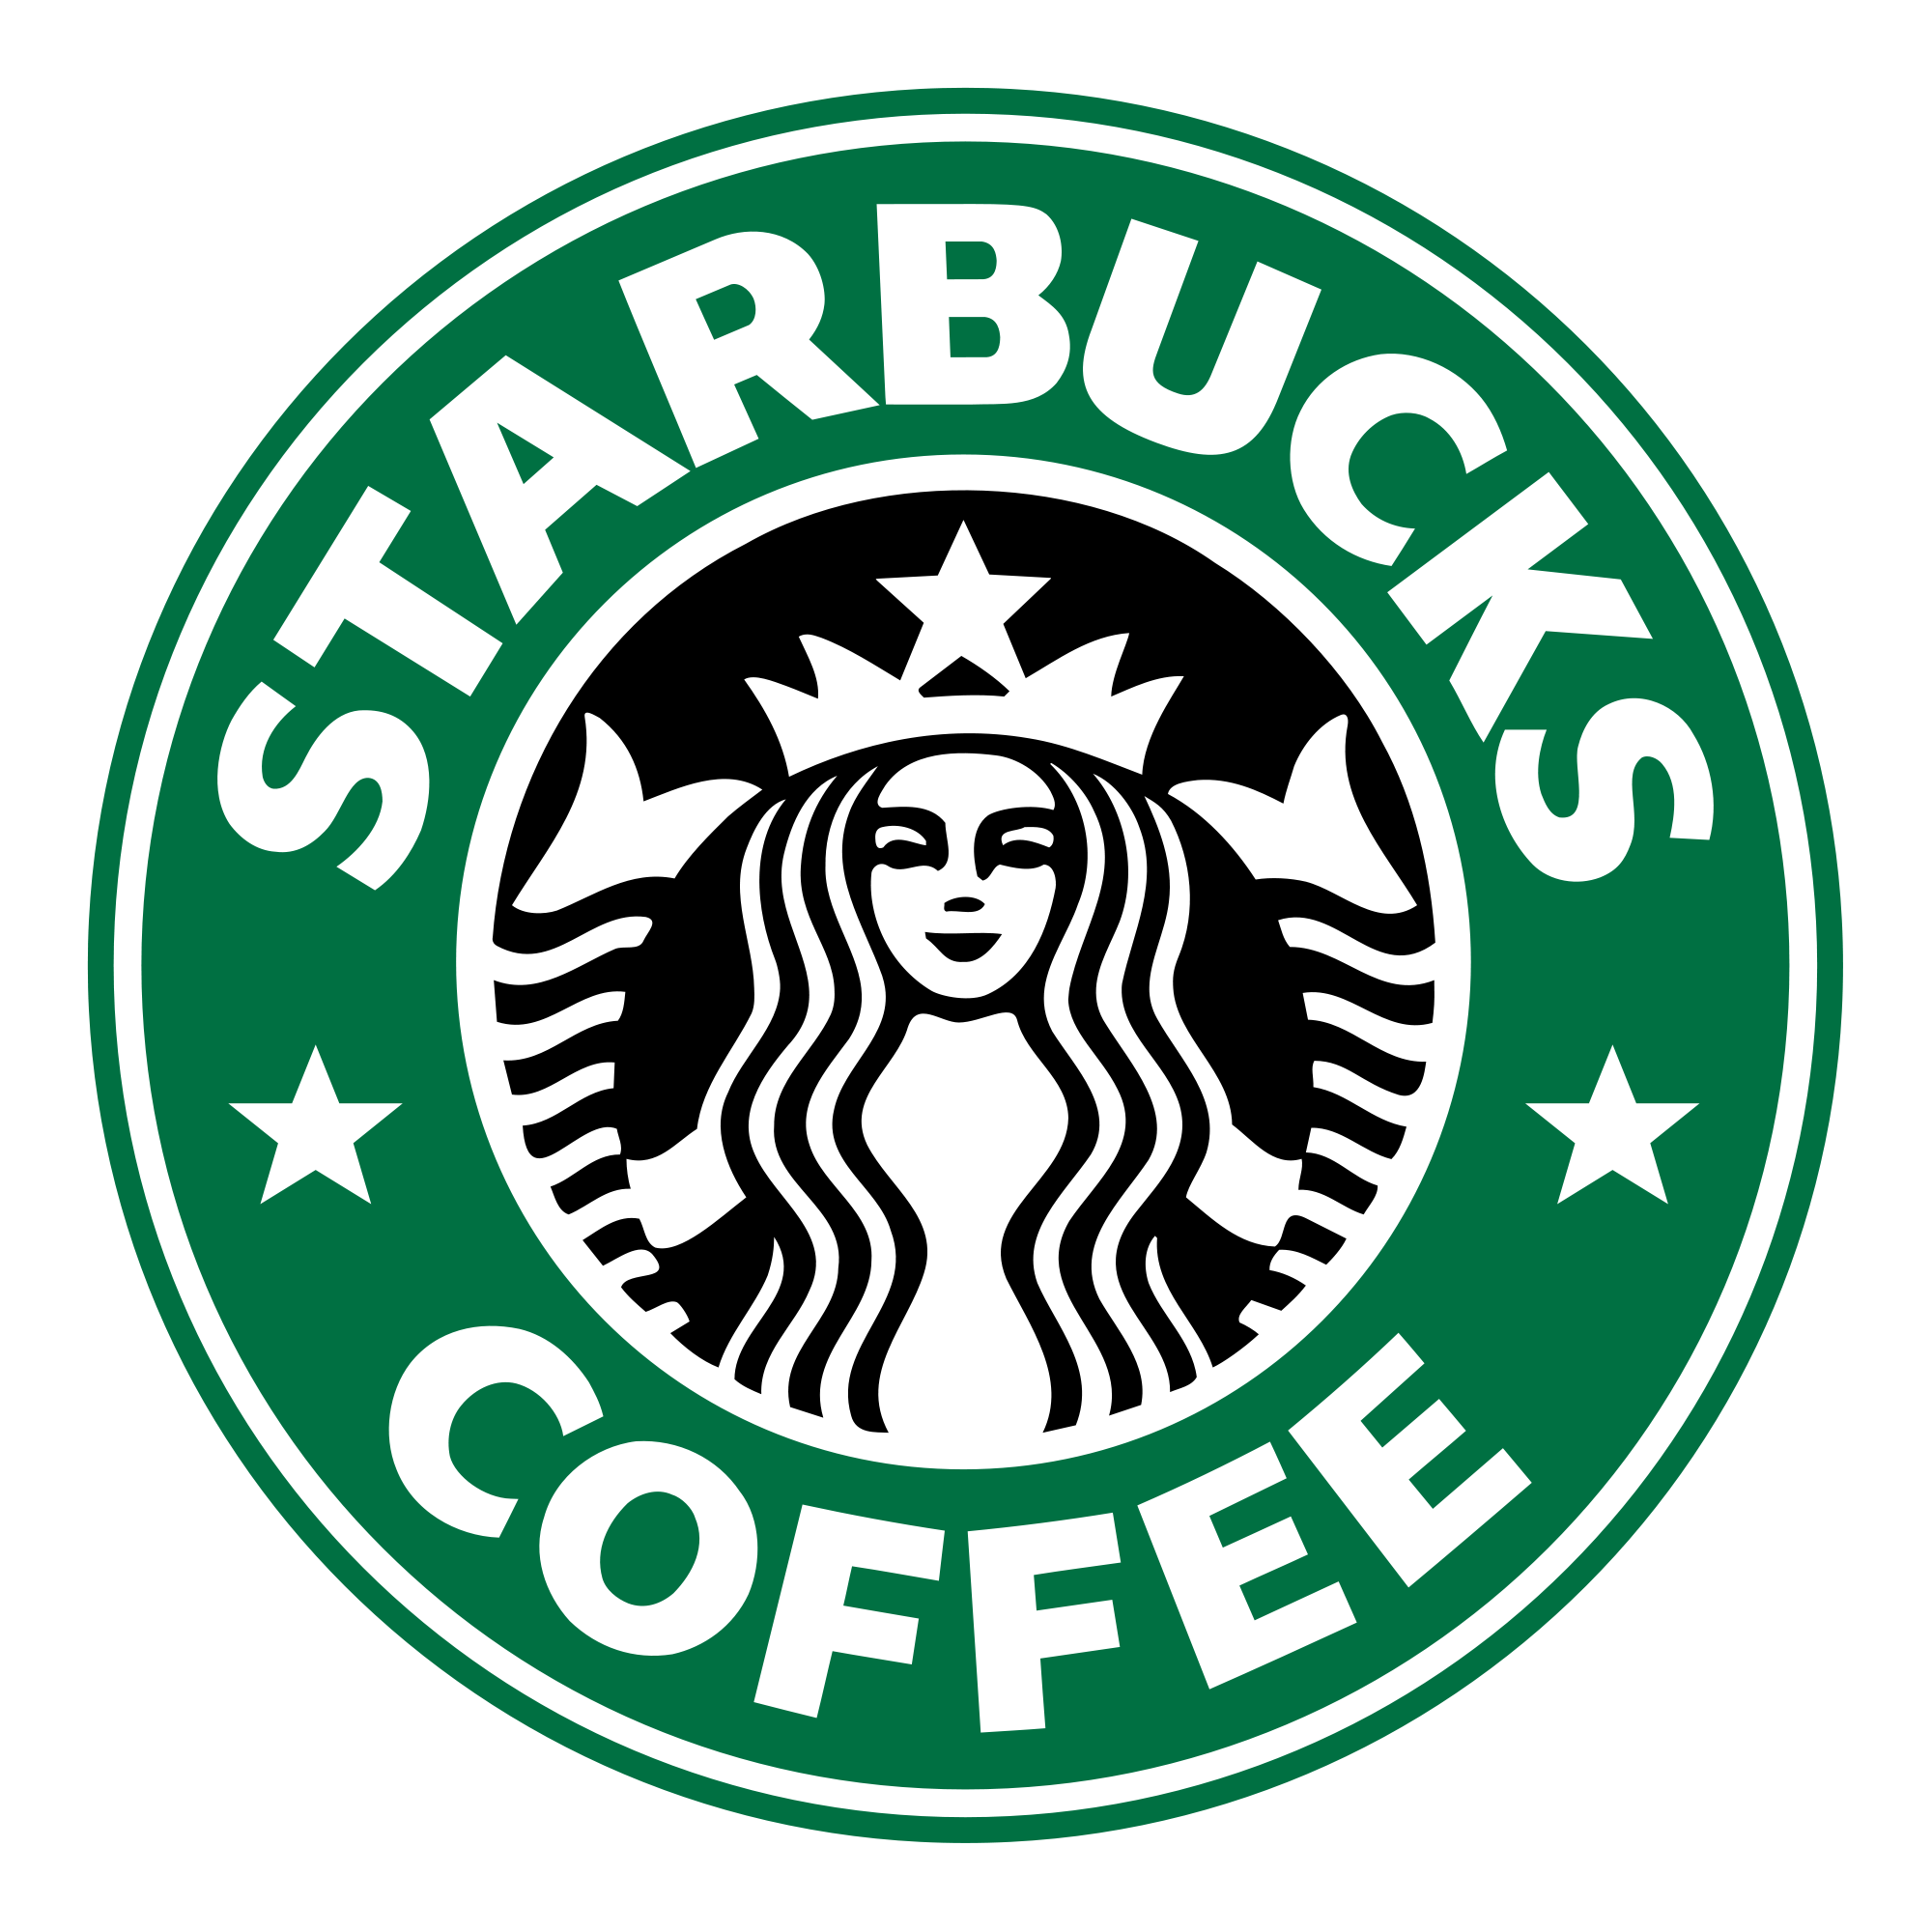 15 Starbucks svg symbol on ubiSafe. Download Starbucks svg